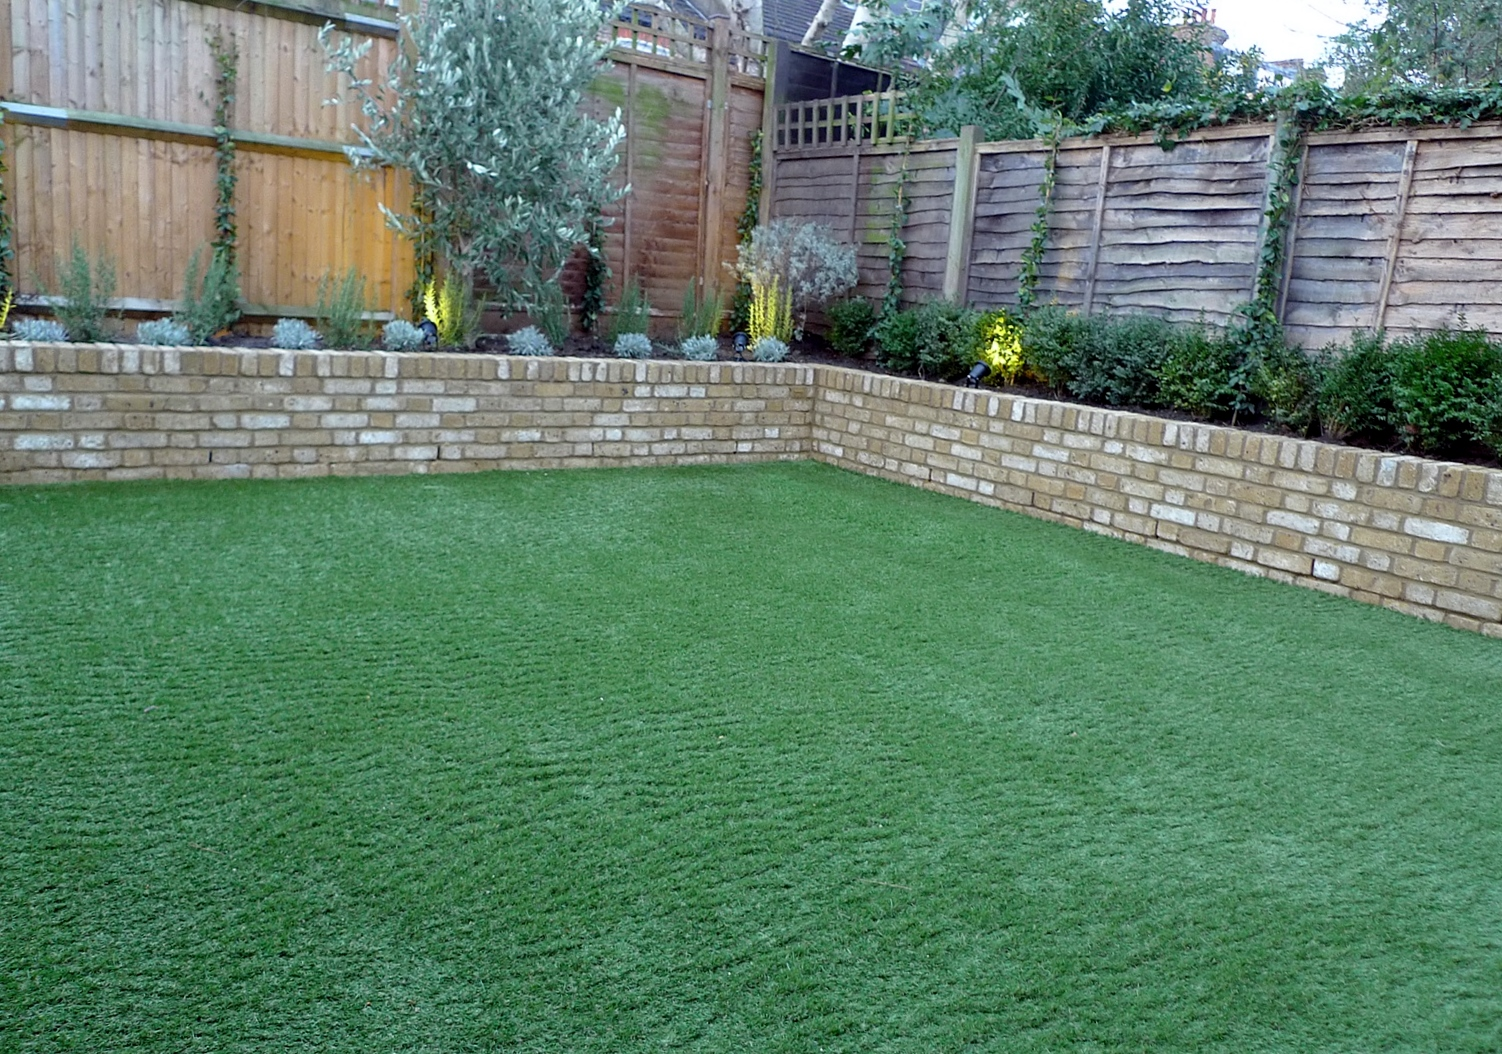 Raised vegetable garden ideas and designs - Yellow Brick Raised Bed Walls Artificial Fake Easy Grass